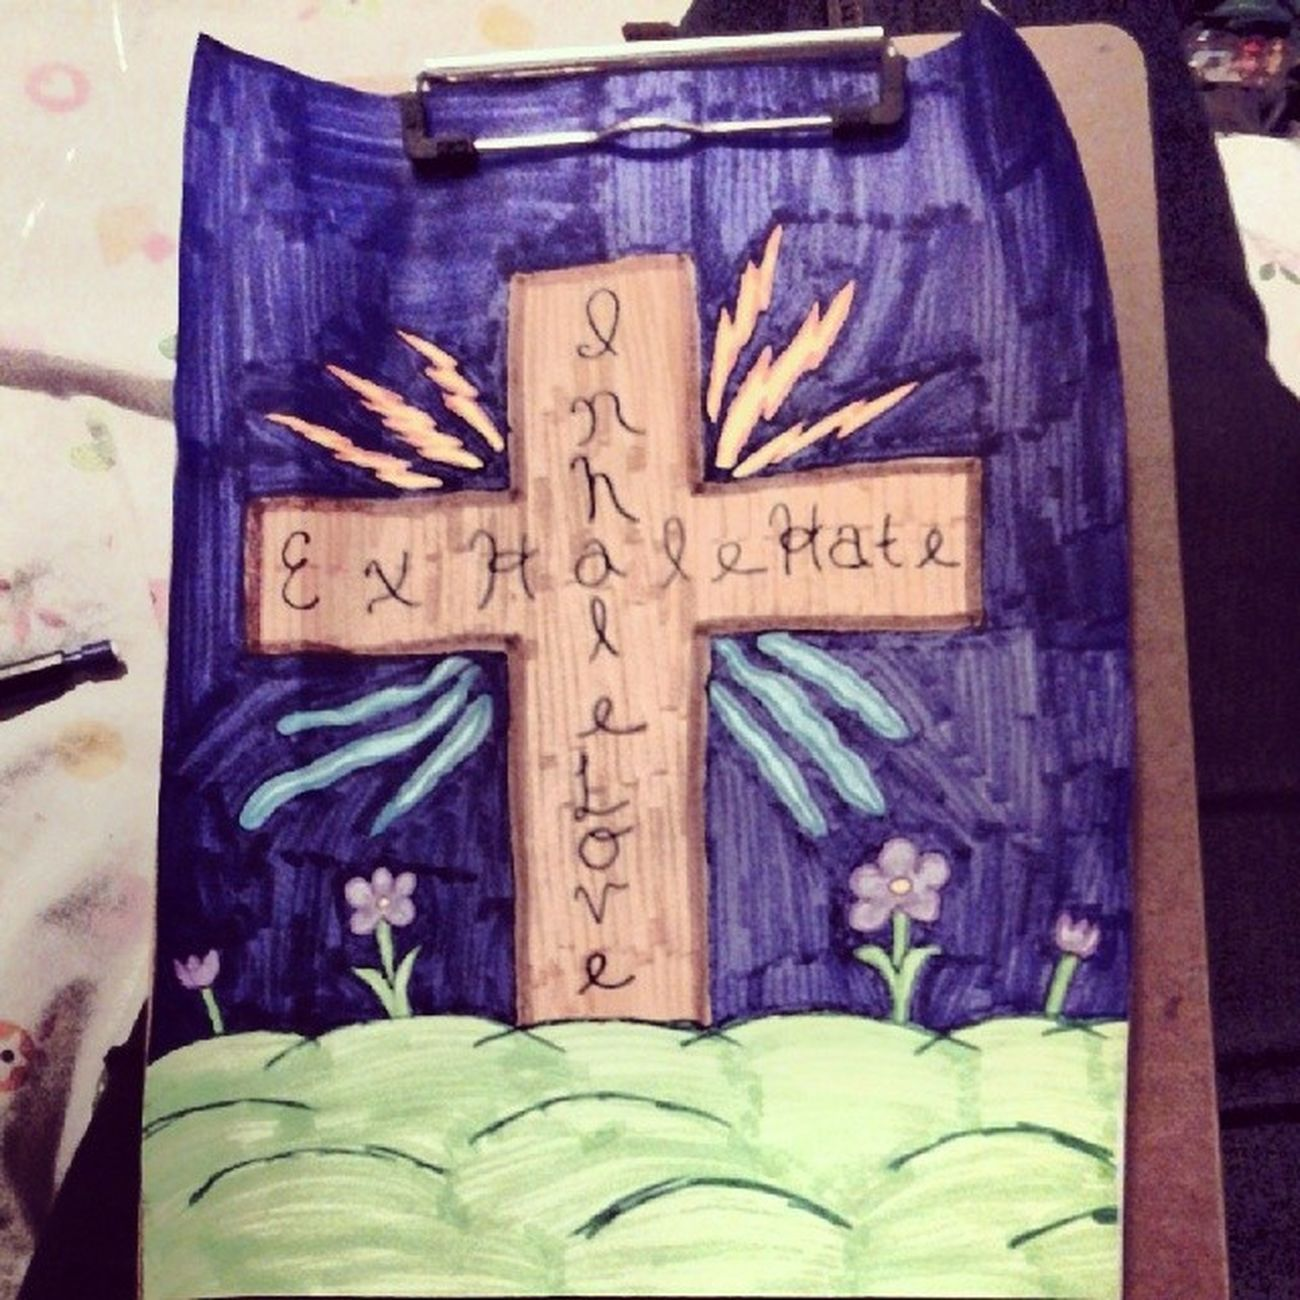 All finished! Finishedproduct Awesome Artsy Godrules cross